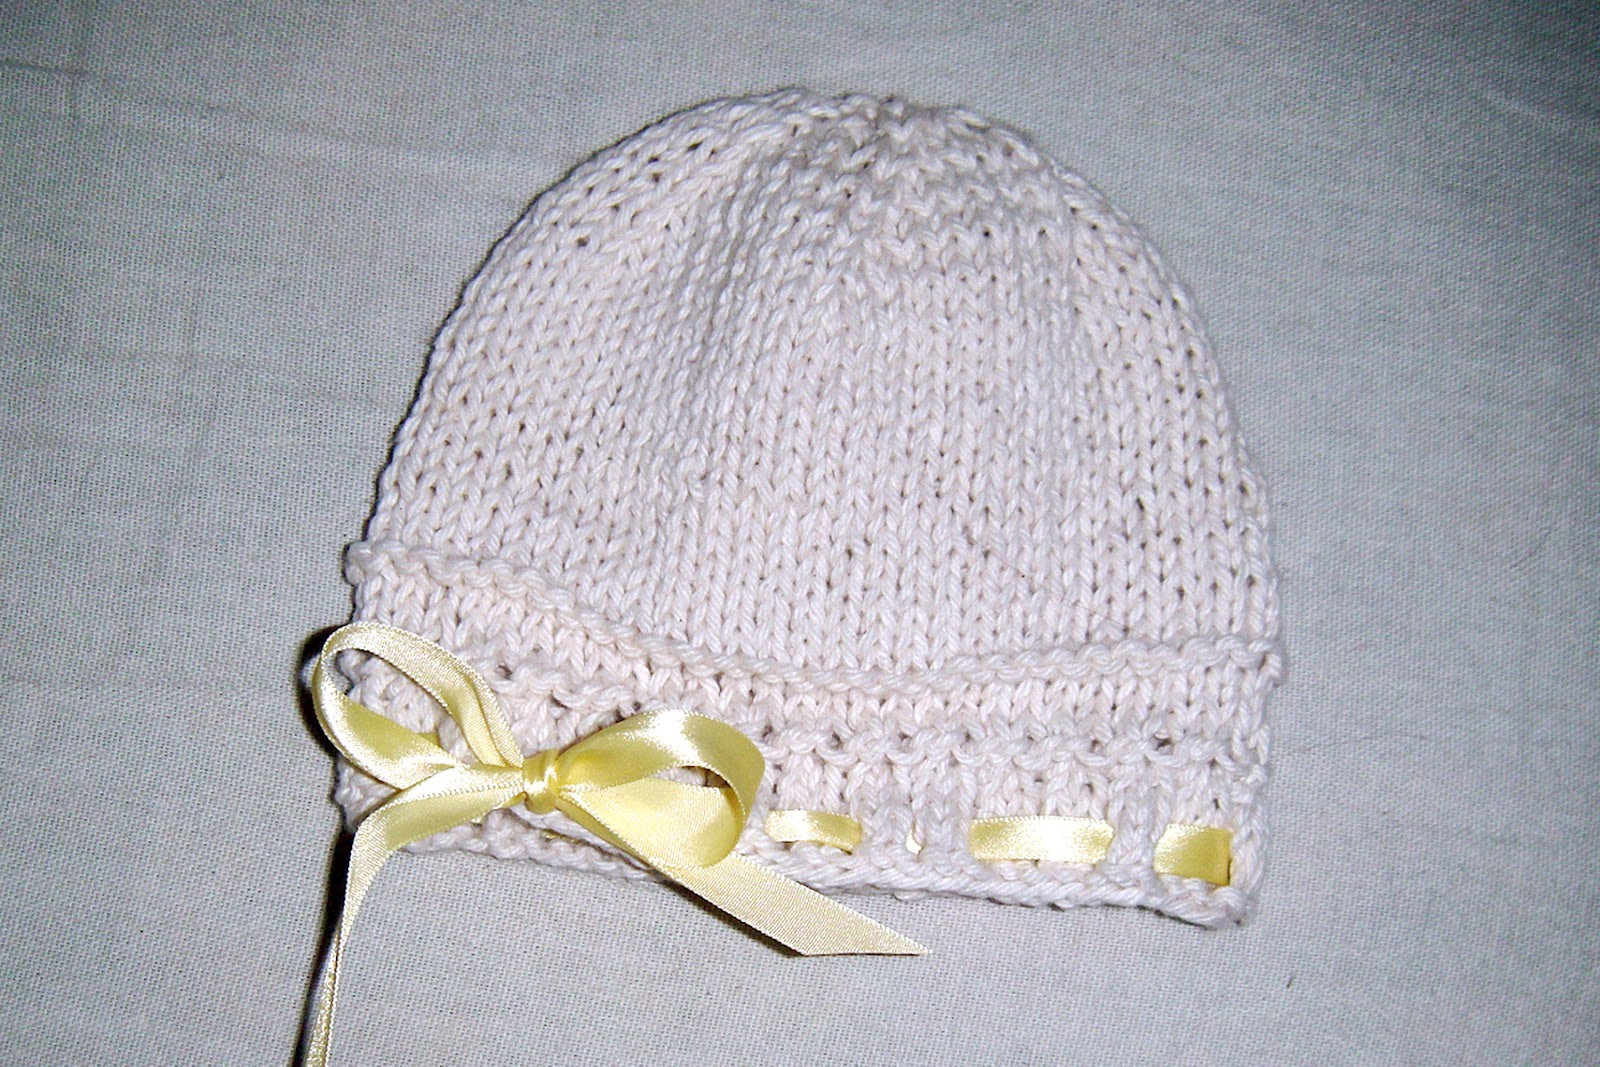 Knitting Hat Patterns Round Needles : Knitting Patterns For Hats Without Circular Needles